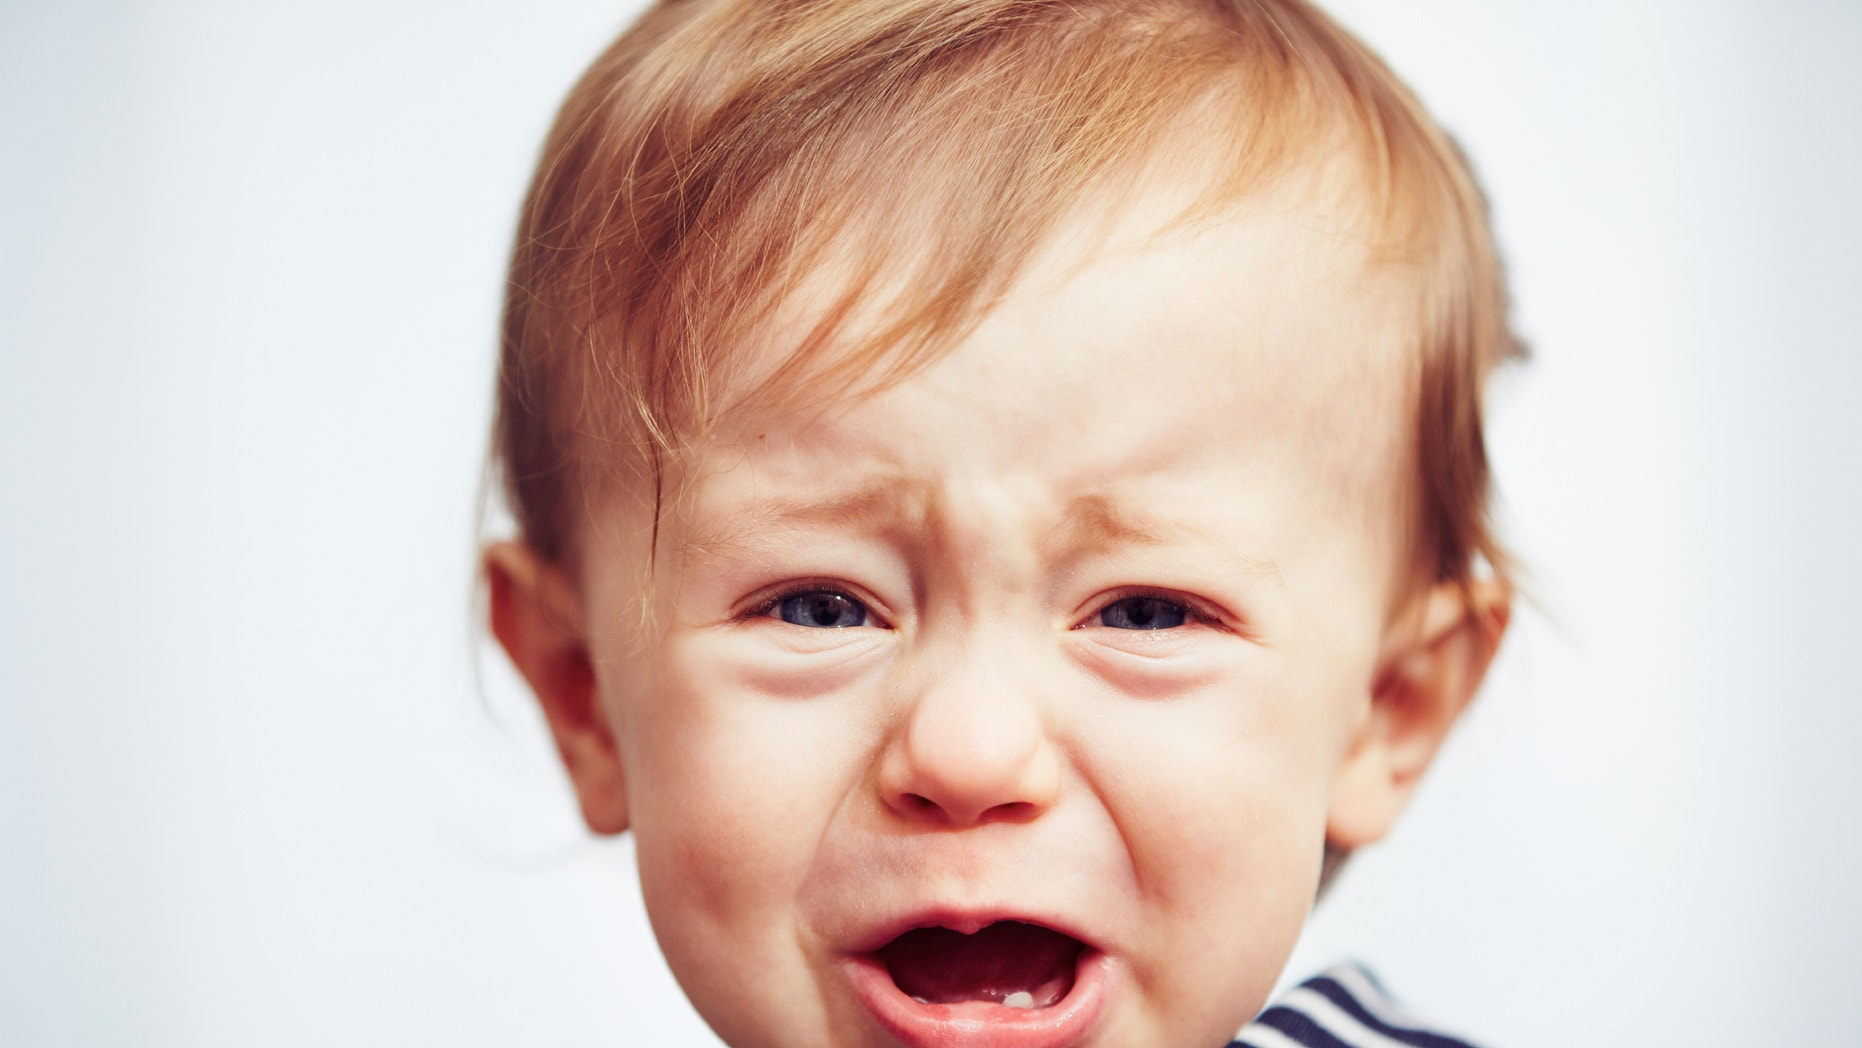 Little boy is crying - selective focus